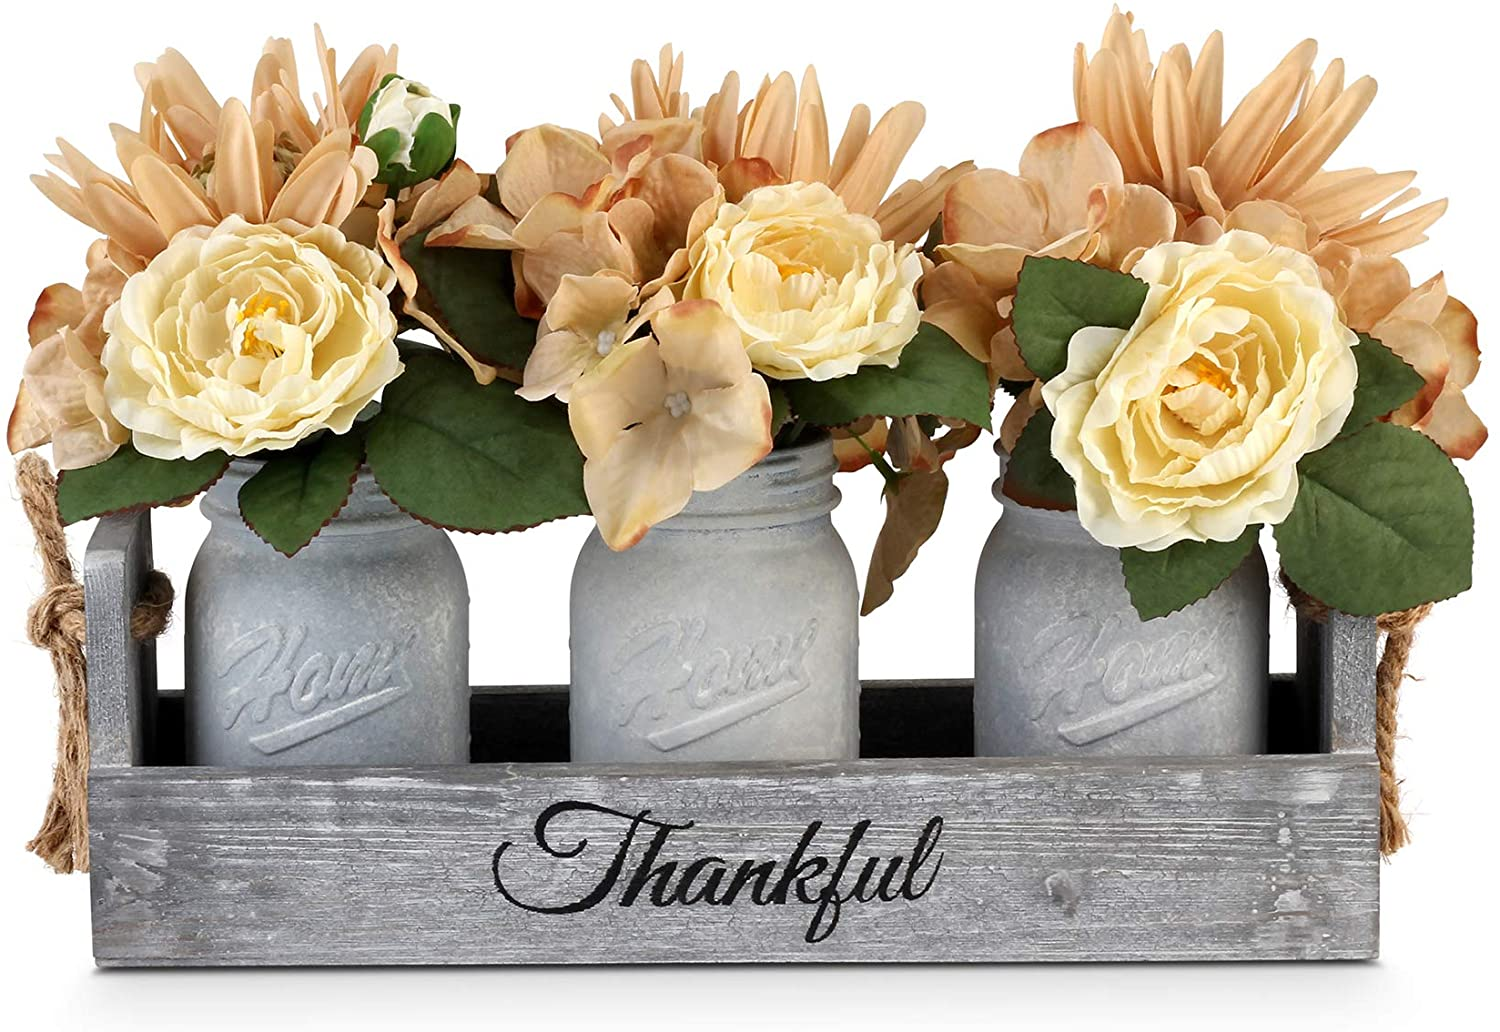 GBtroo Mason Jar Centerpiece – Handmade Table Decoration for Farmhouse Kitchen and Shabby Chic Rustic Wedding Decor – Antique White Glass Jars with Faux Flowers in Distressed Wood Box